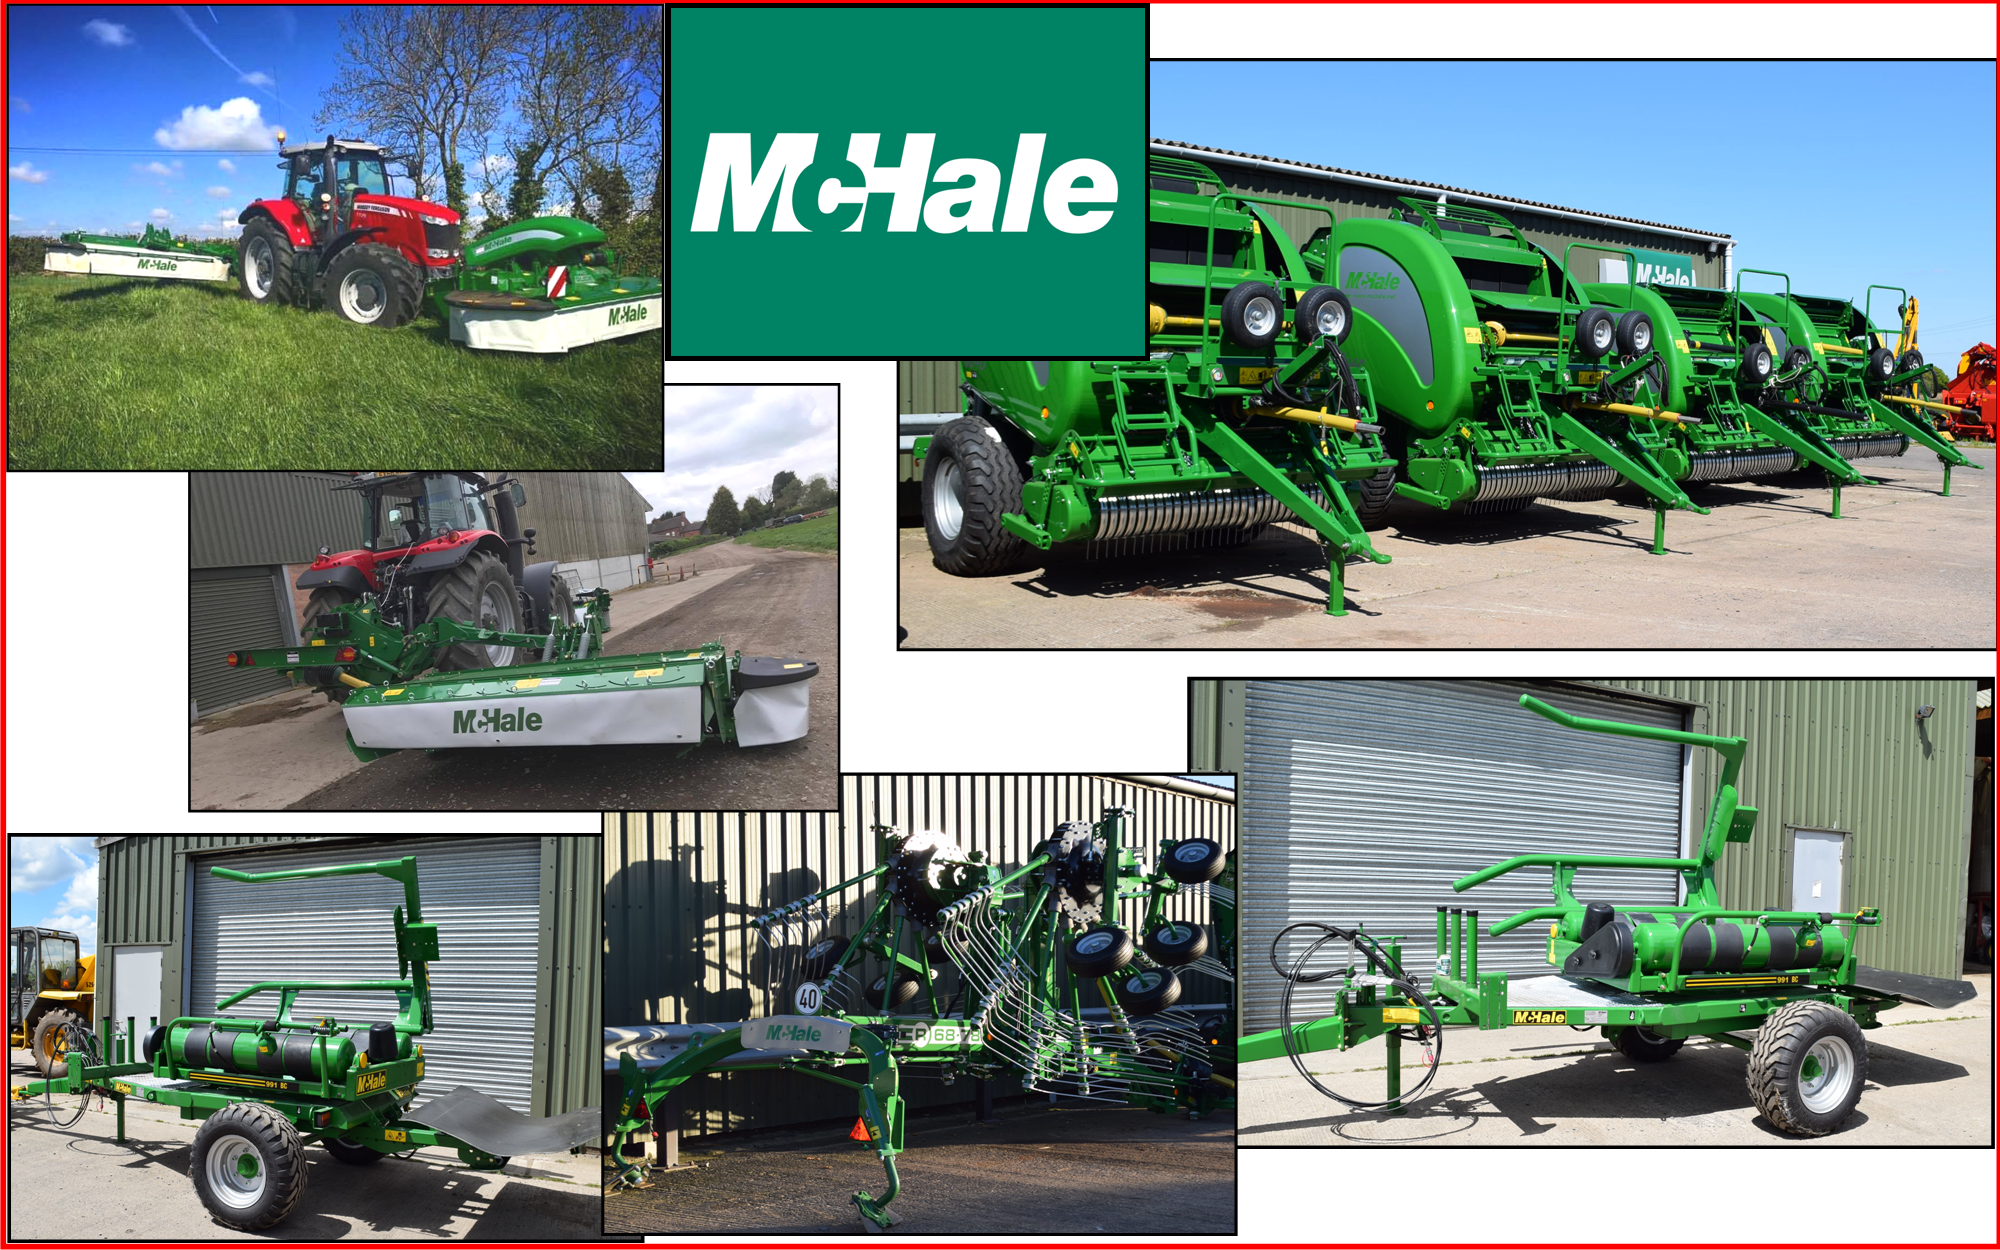 Mchale products